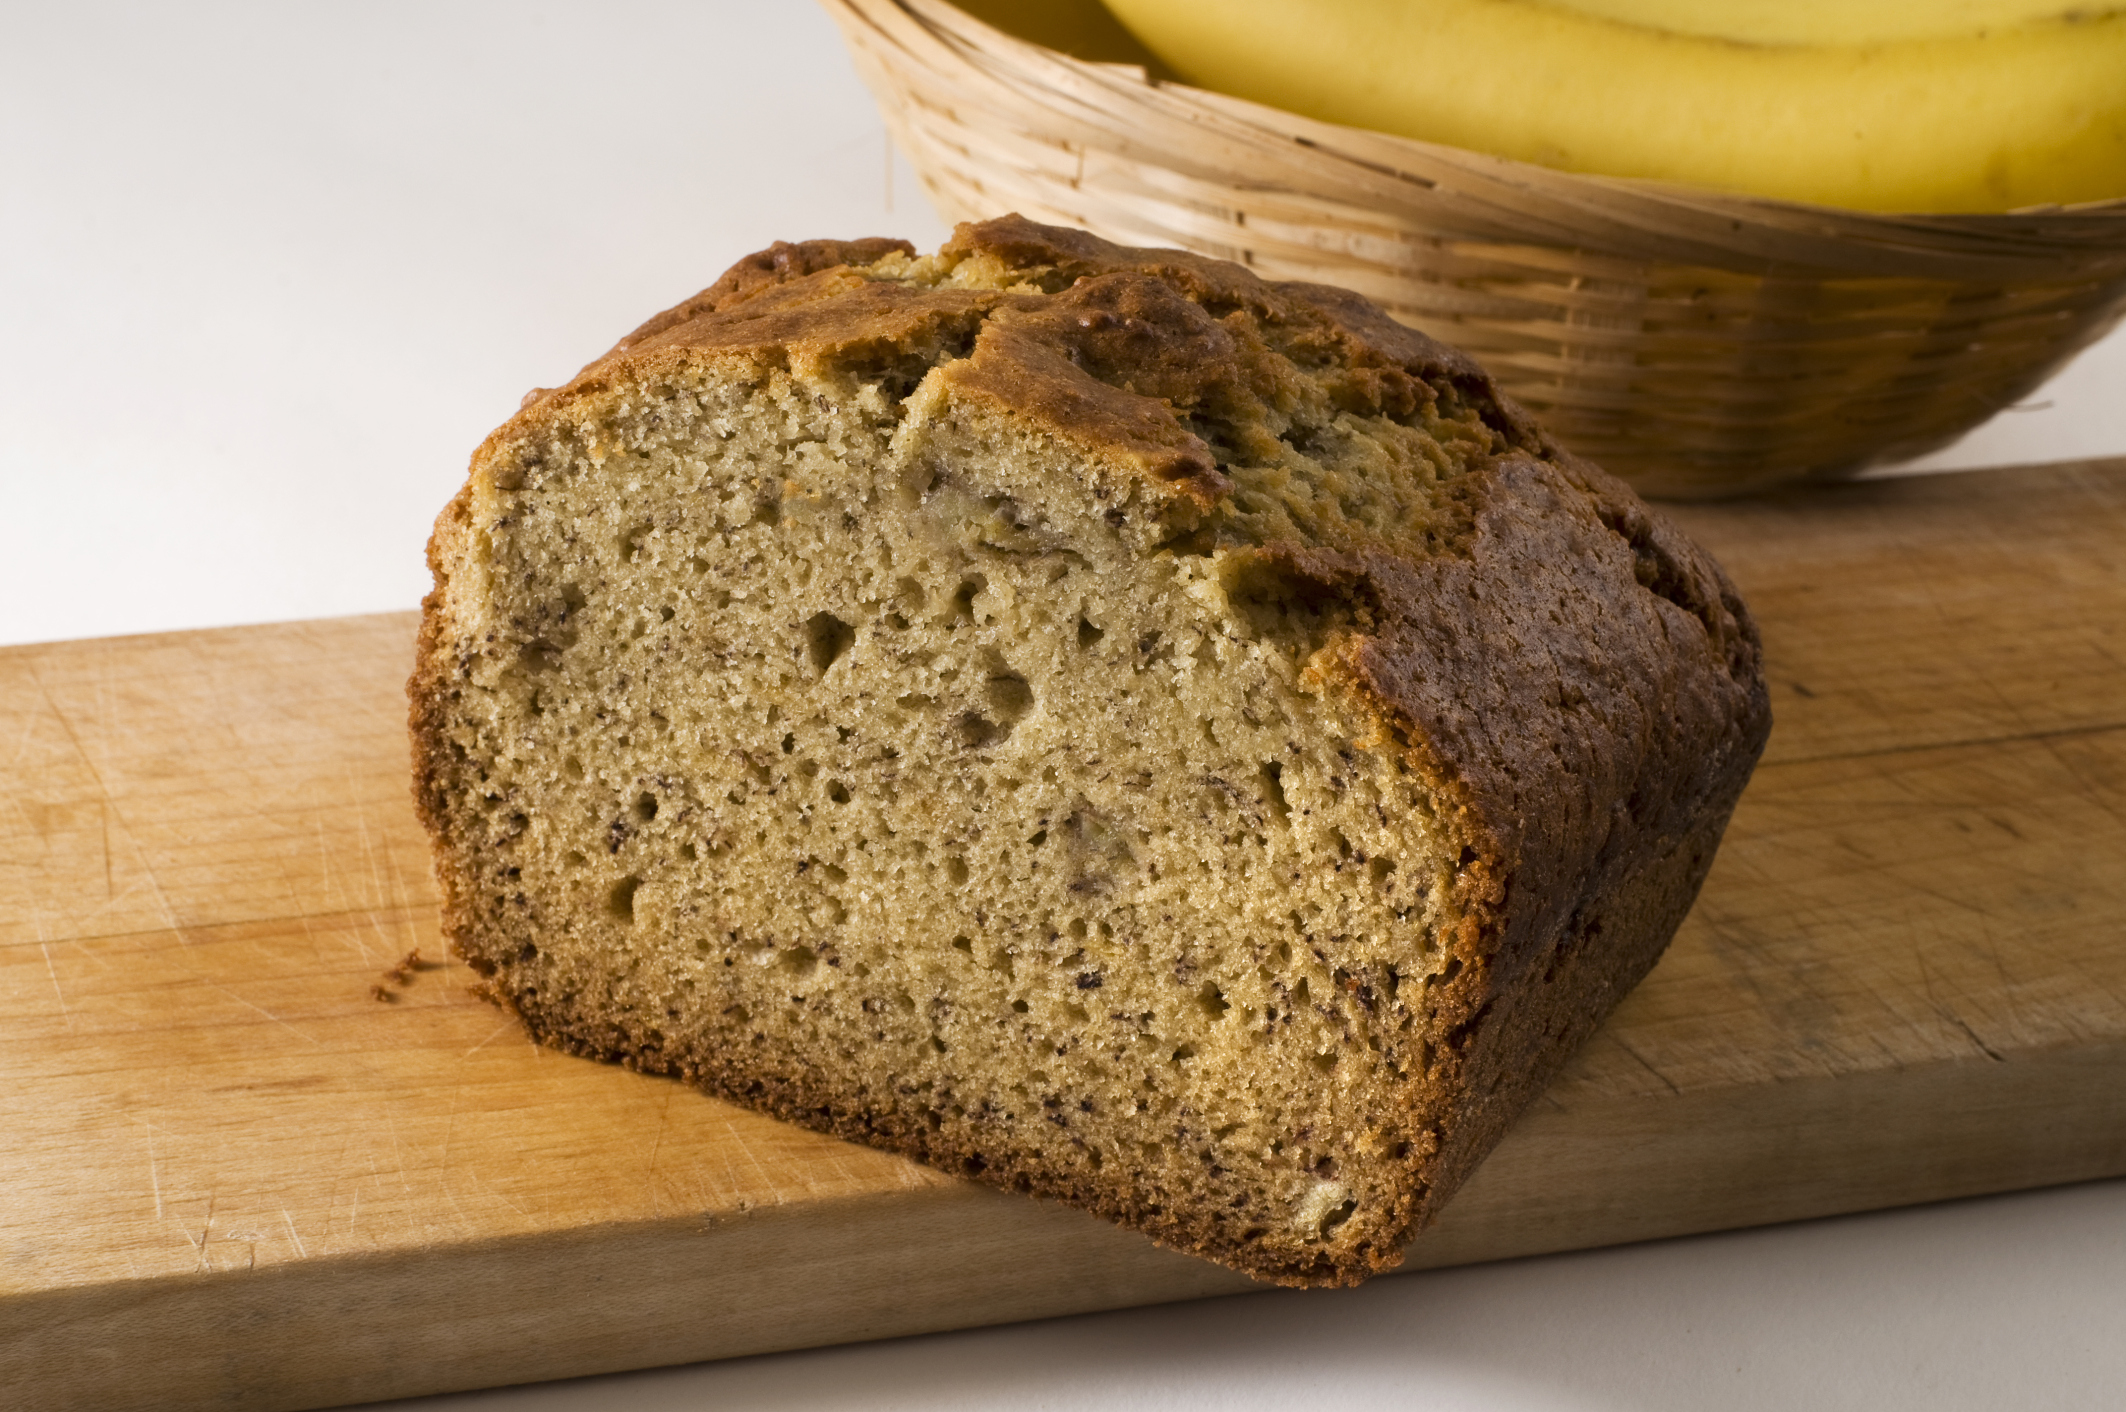 A delicious banana bread recipe.